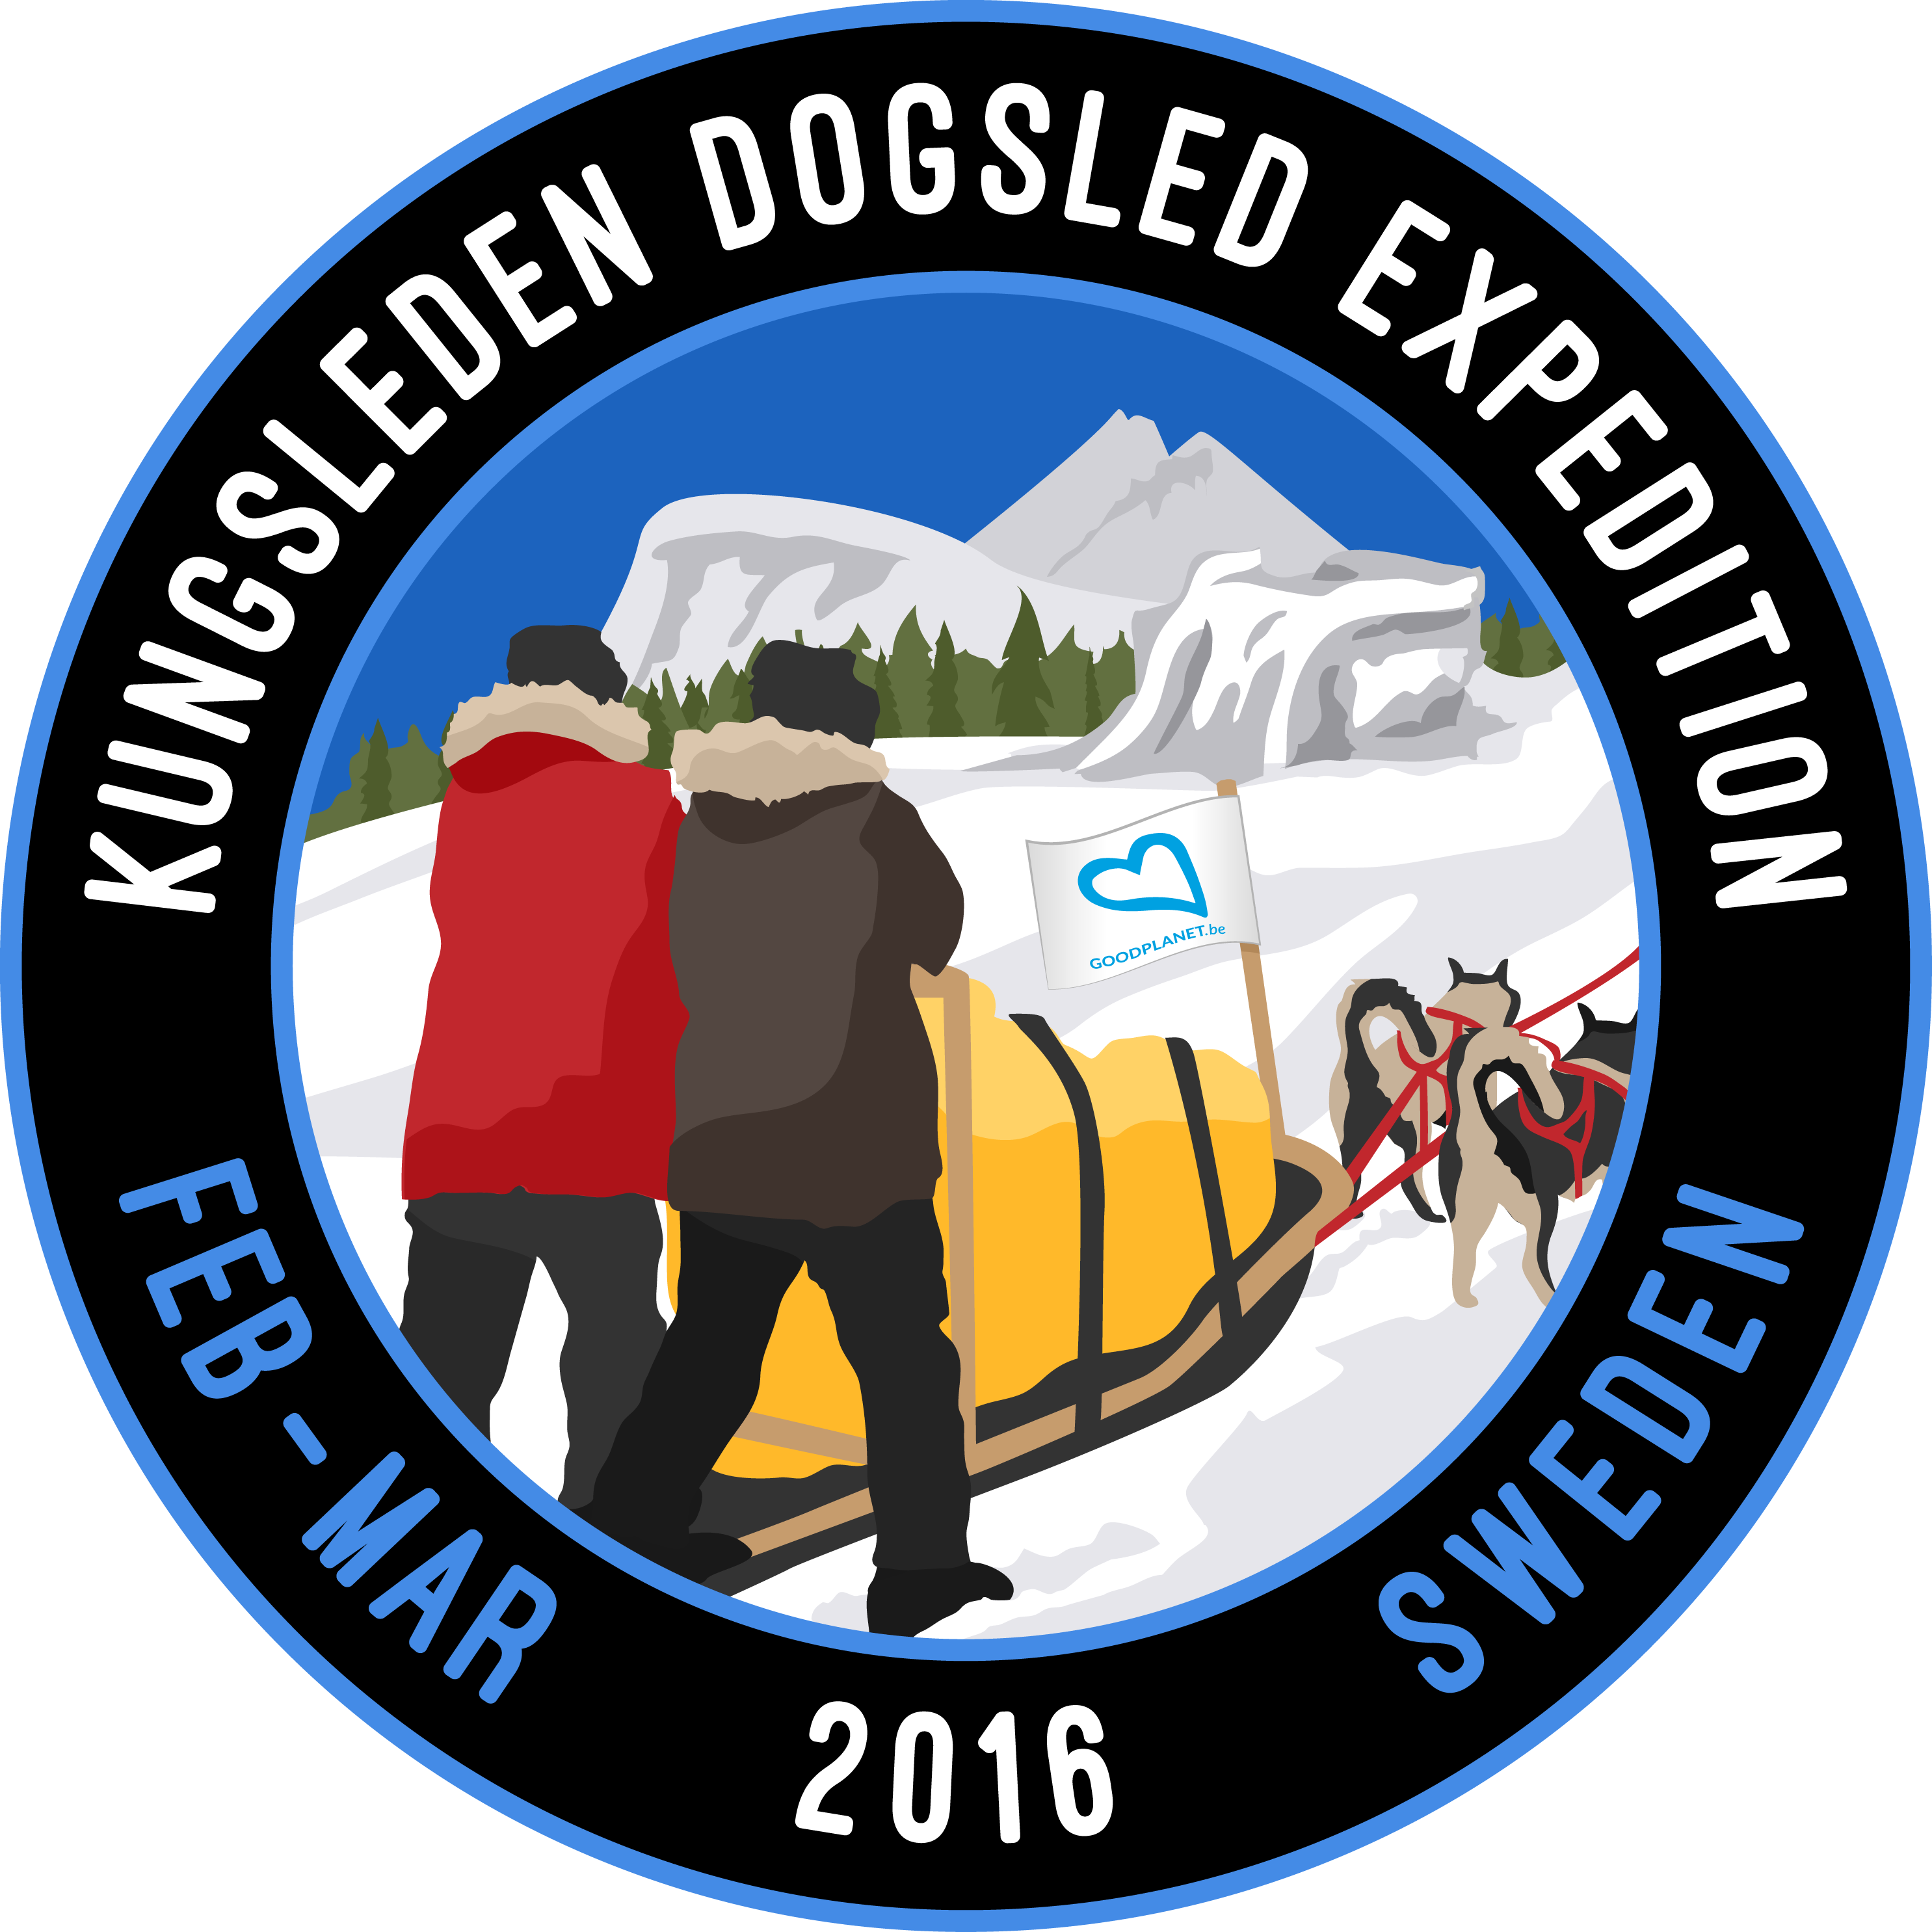 the swedish arctic kungsleden dogsled expedition 2016